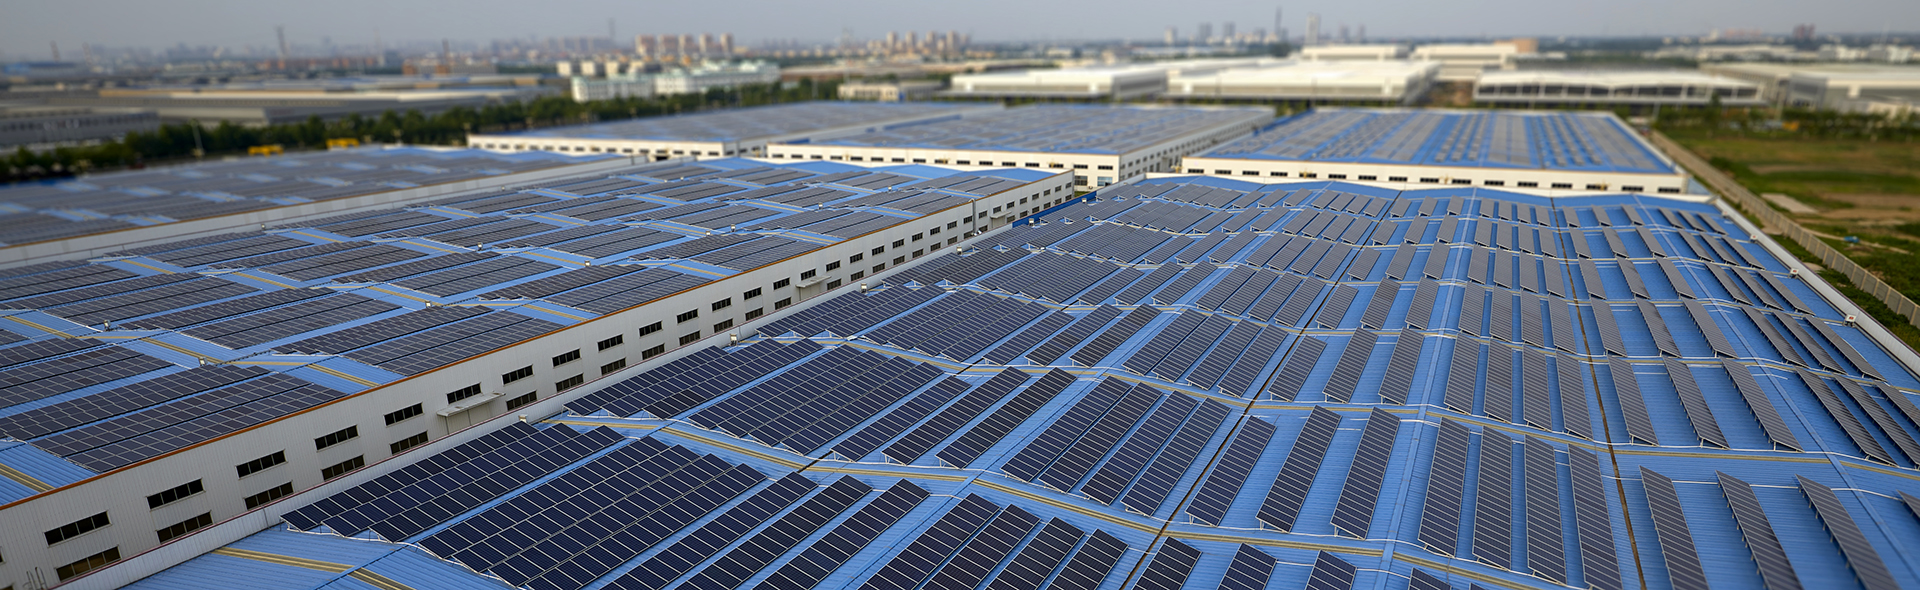 Solar panels on several industrial complex buildings